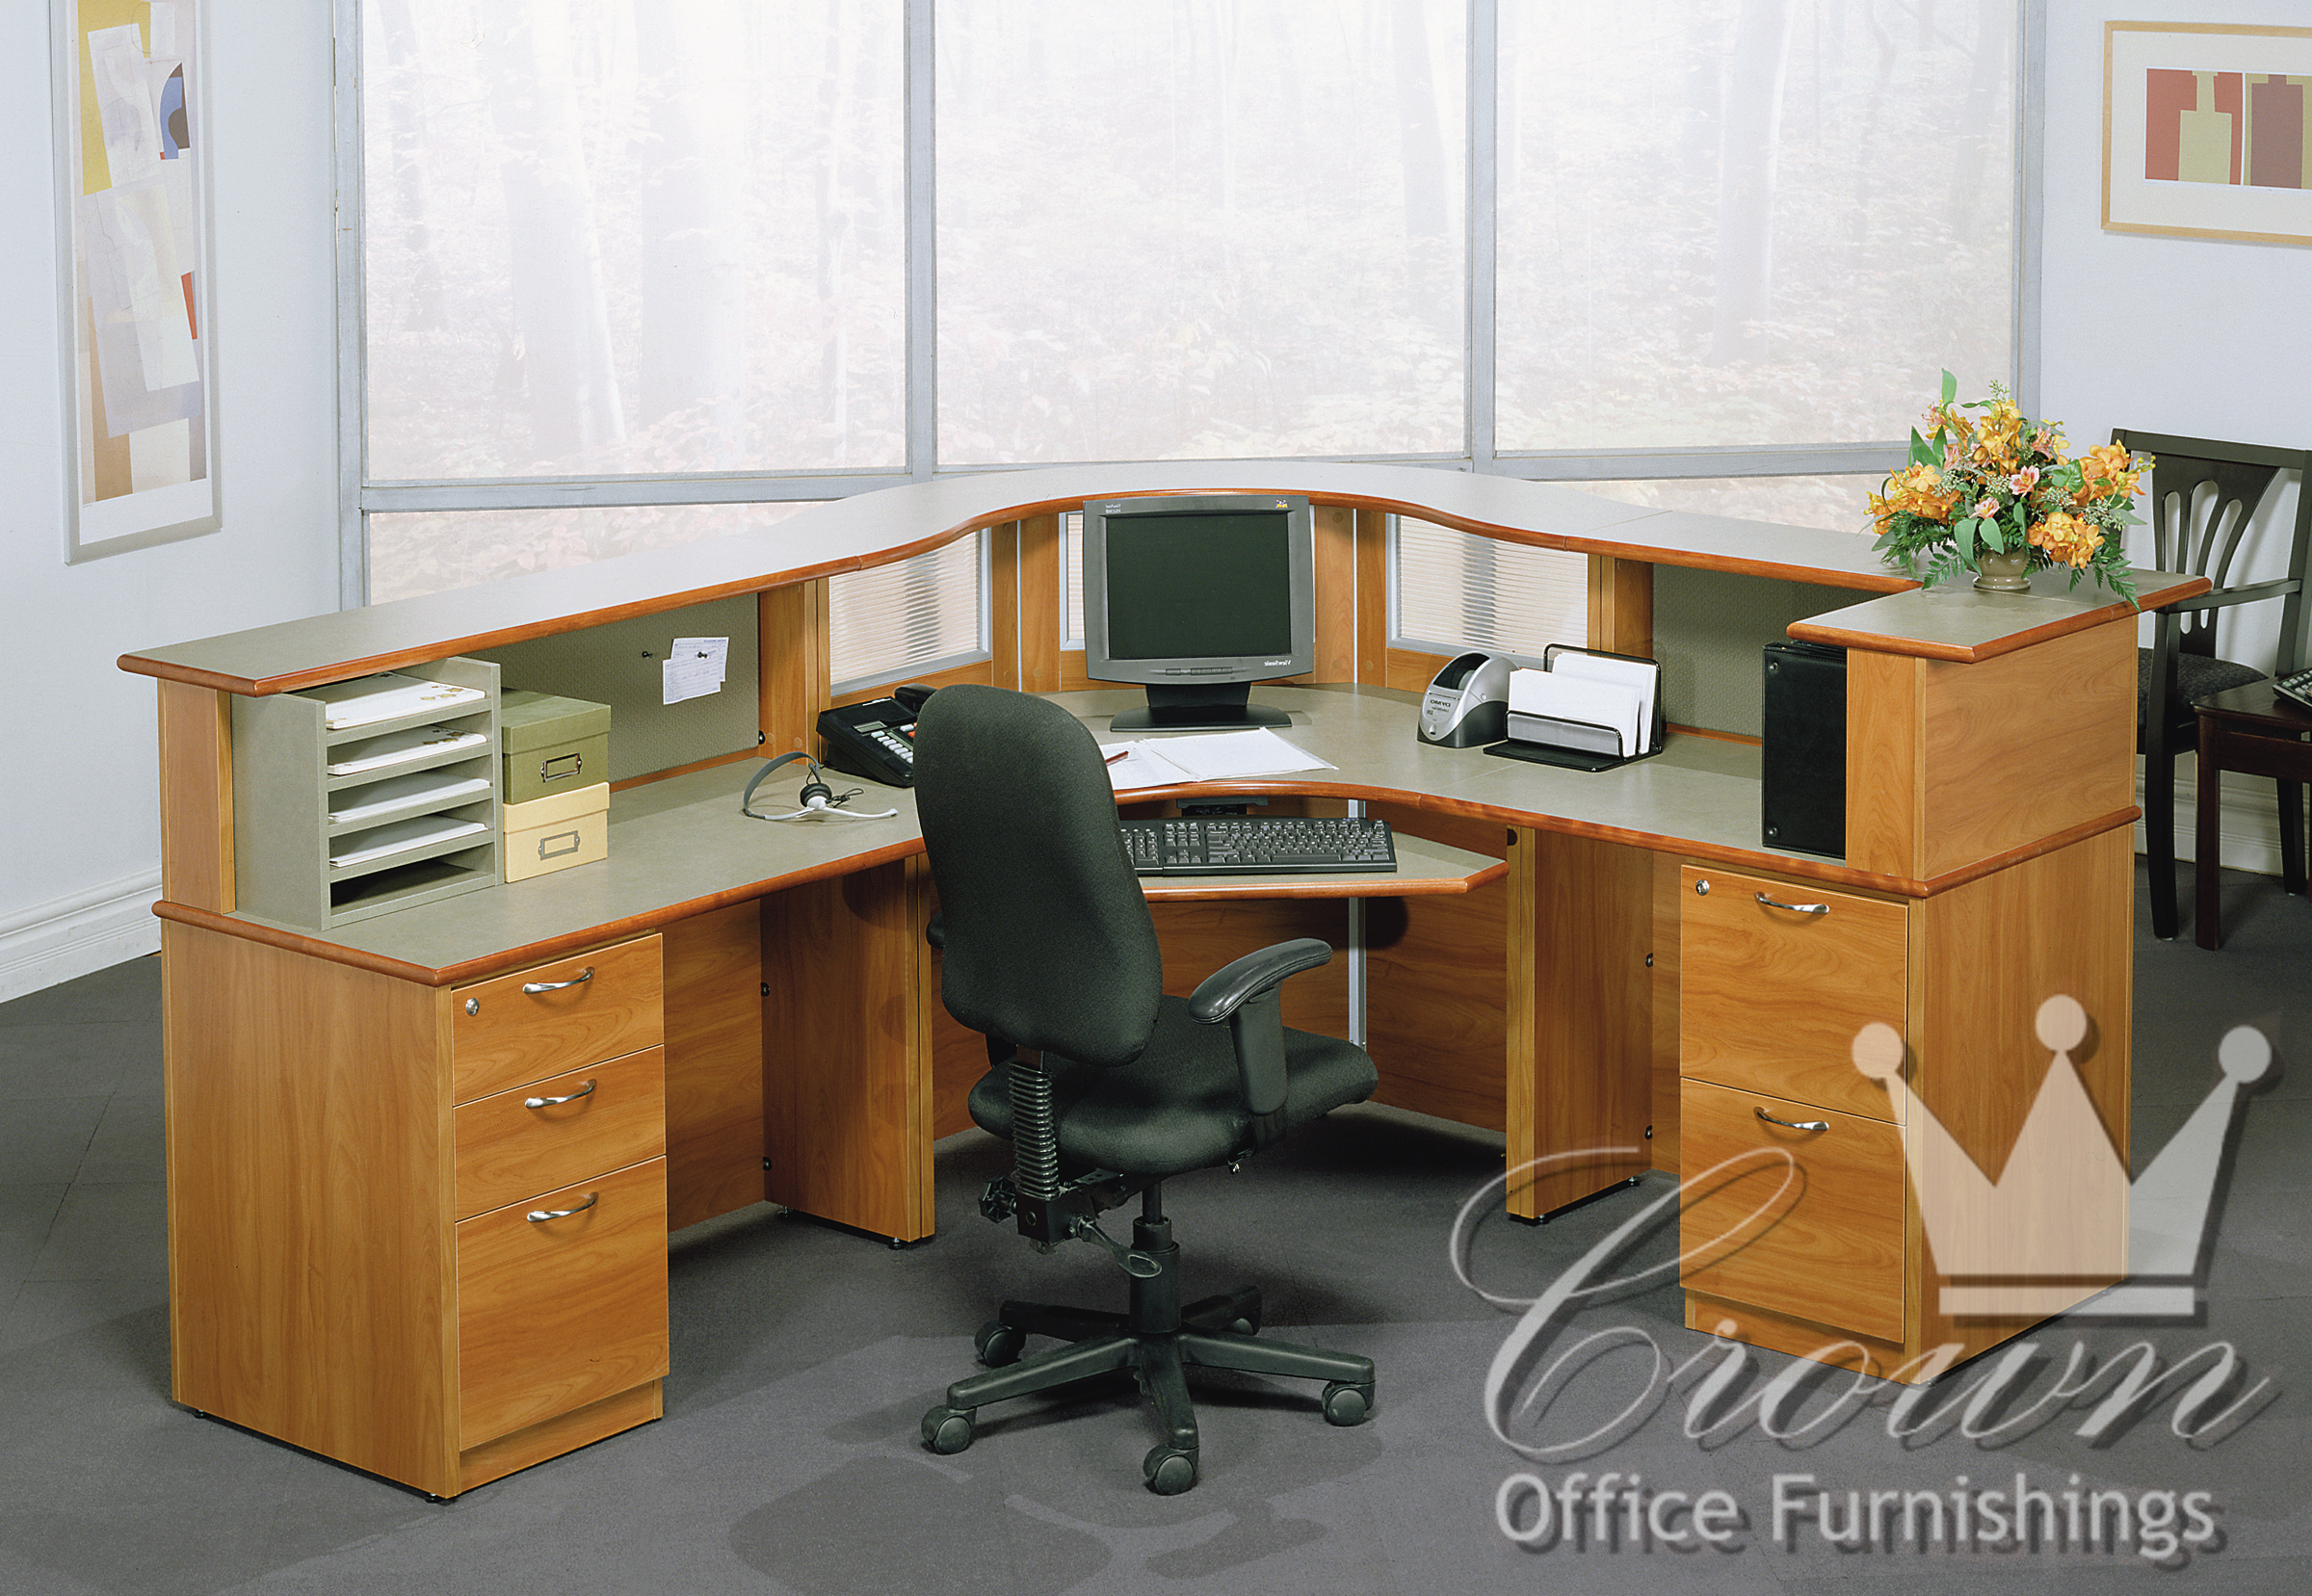 Transitional Reception Crown Office Furniture Tulsa Oklahoma